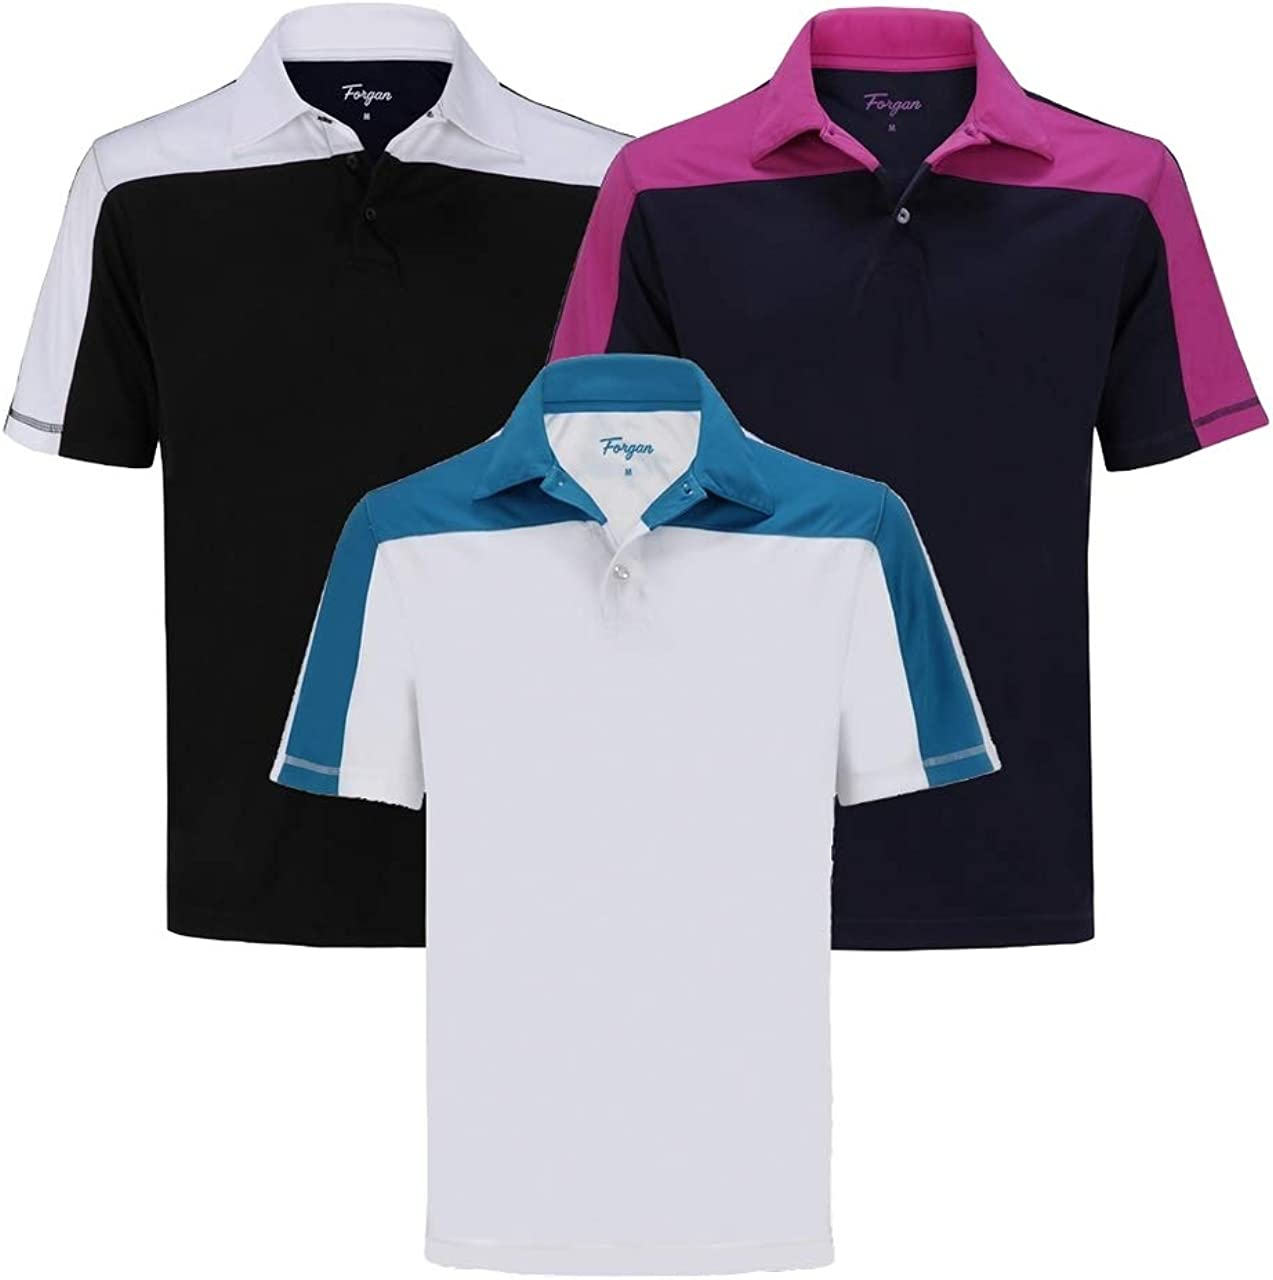 Forgan of St Andrews Block Max Max 62% OFF 89% OFF Panel 3 Golf Pack Premium Polo Shirts